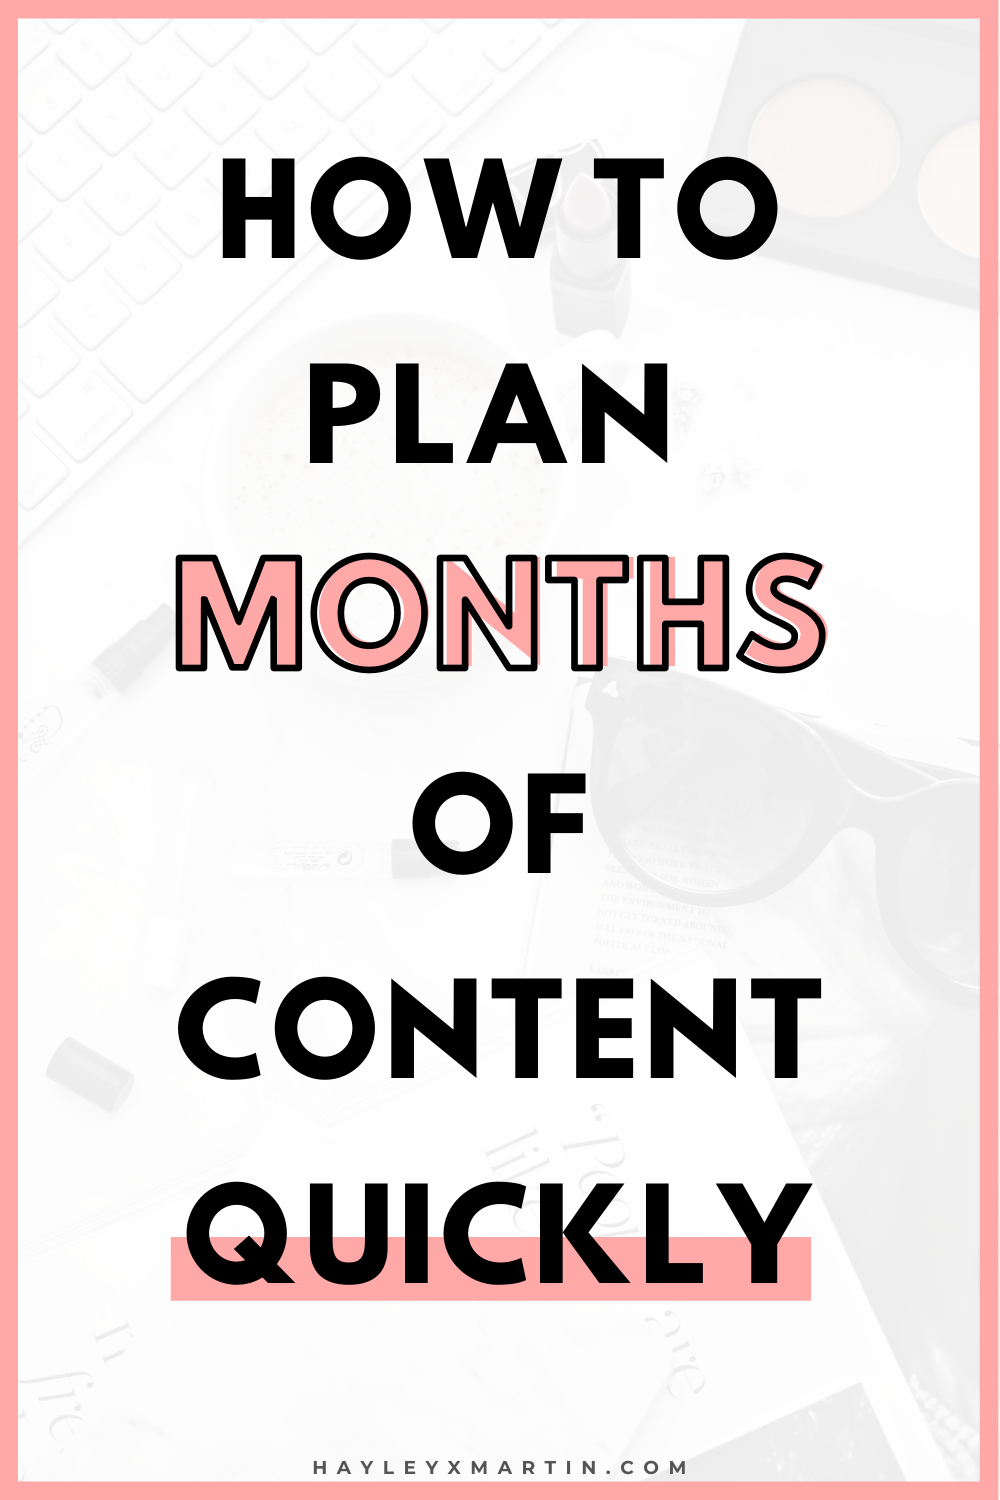 HOW TO PLAN MONTHS OF CONTENT, QUICKLY! HAYLEYXMARTIN.COM